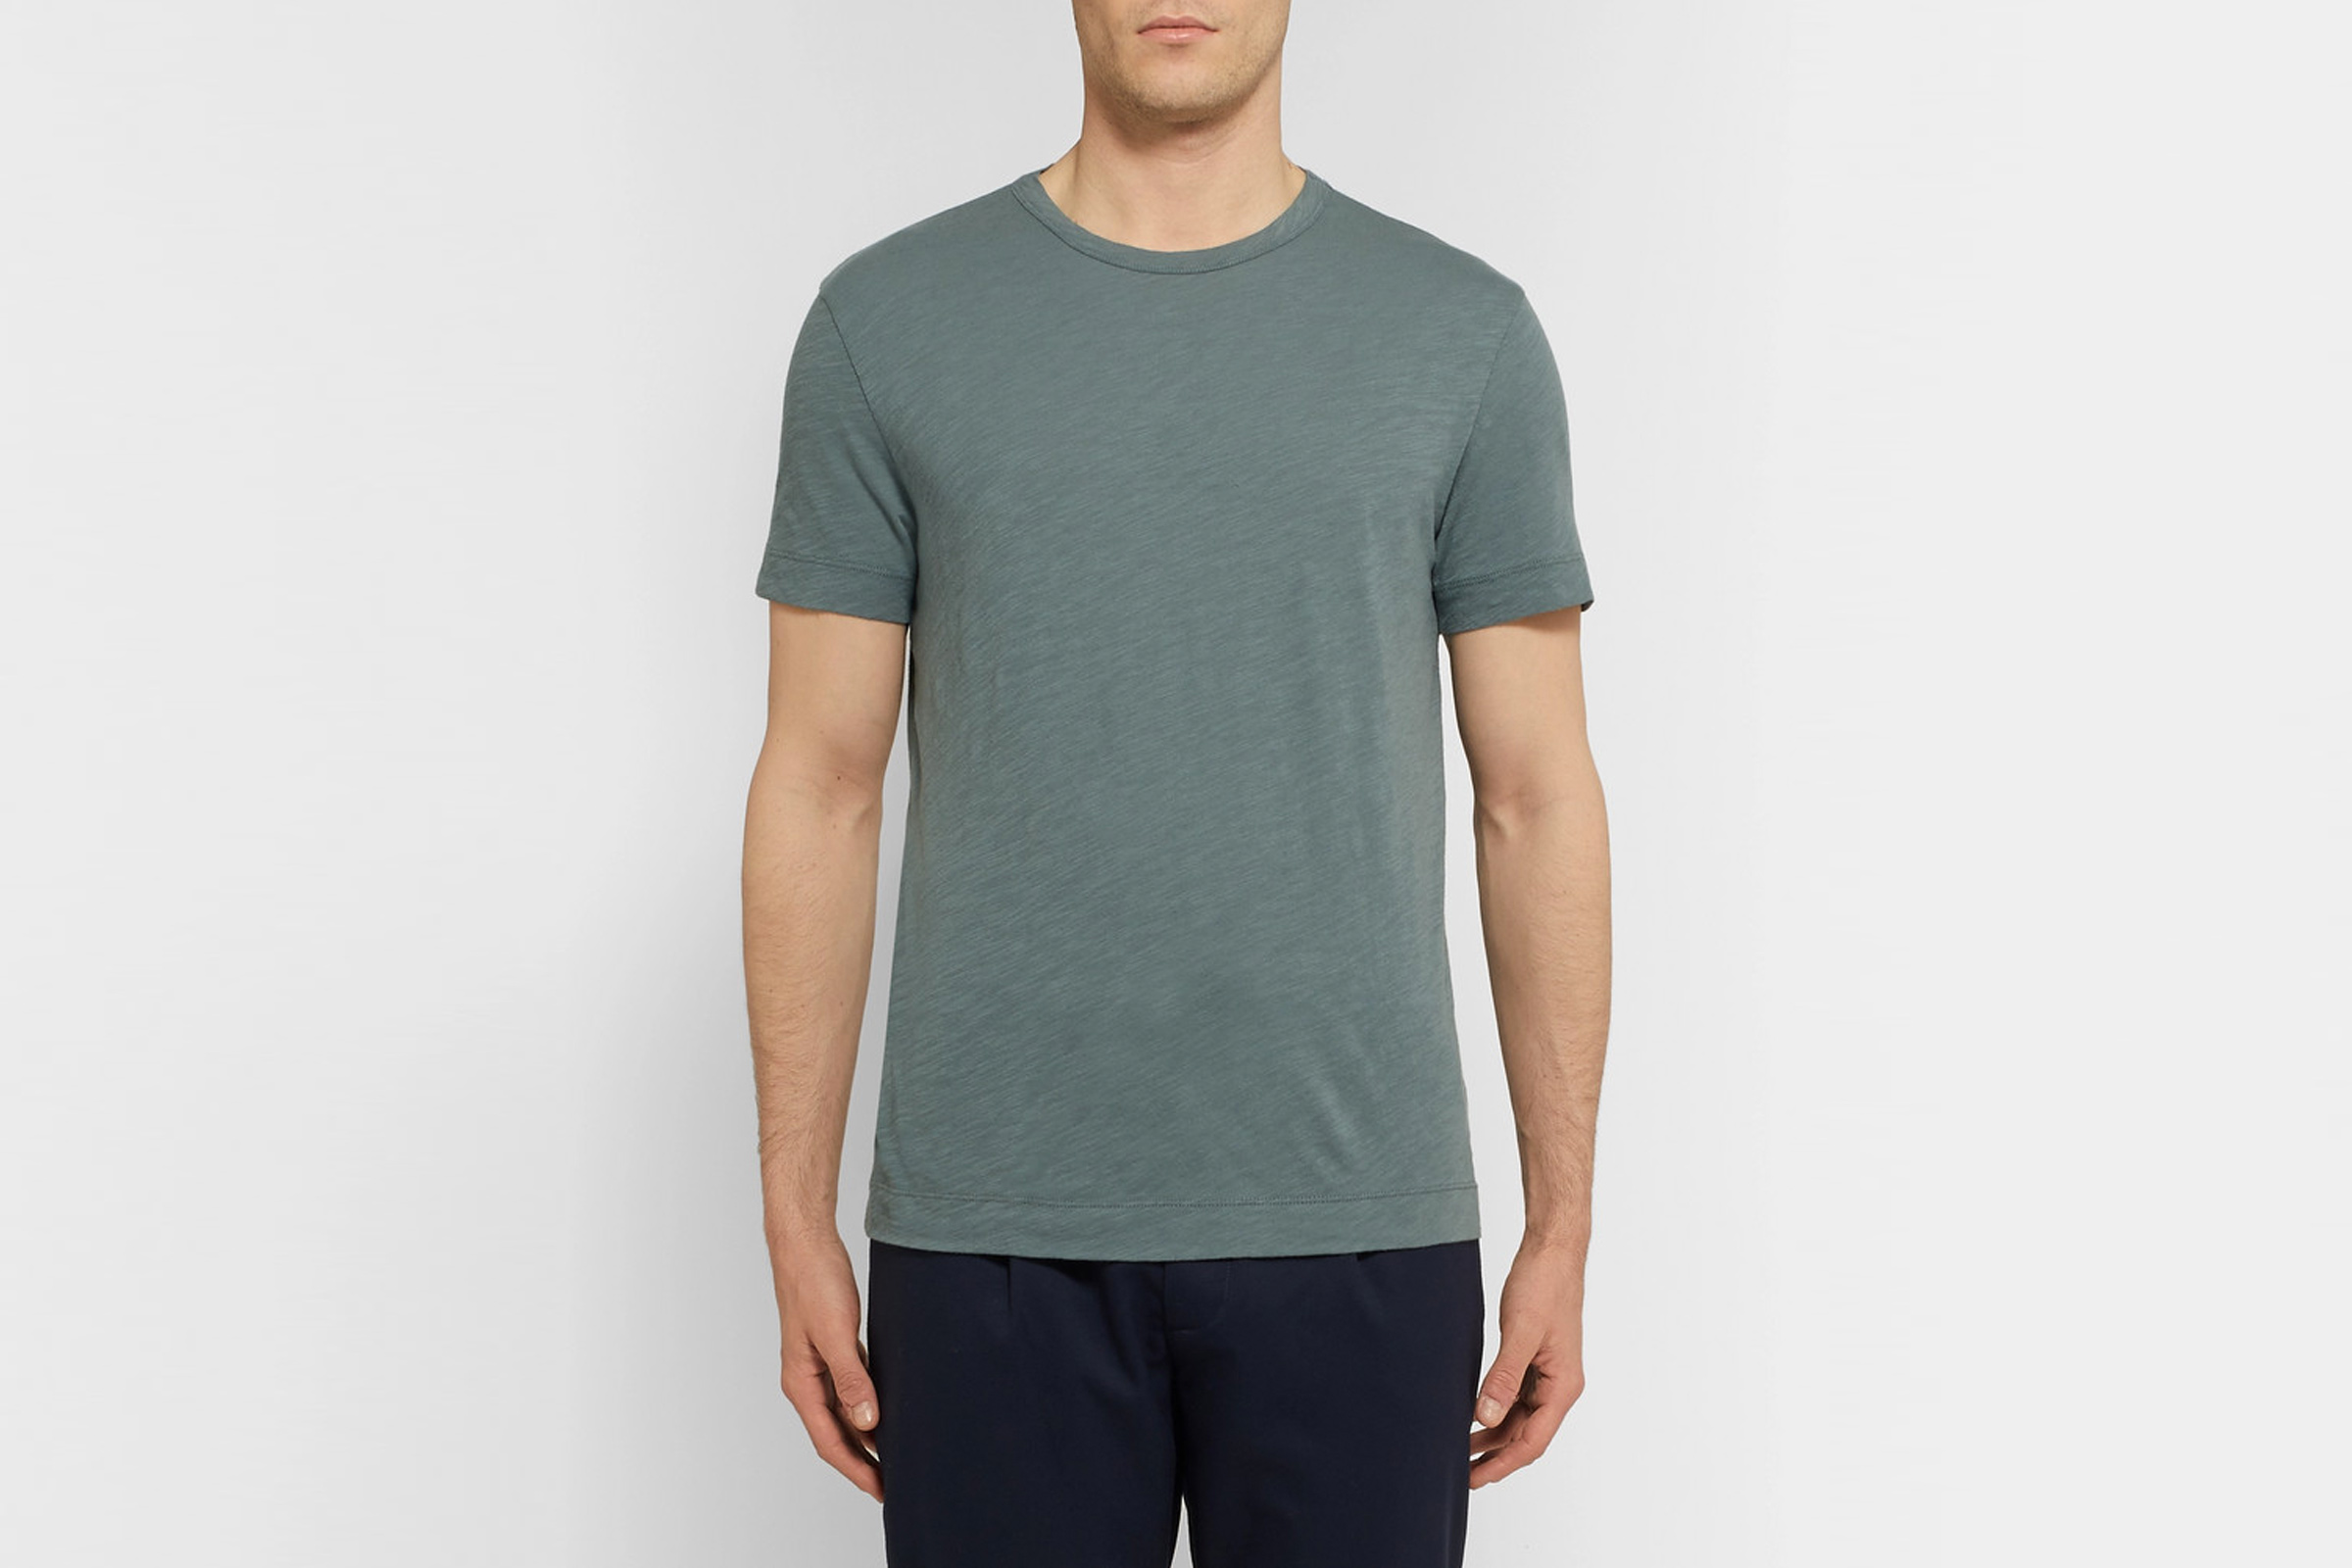 Men's Basic Tees CLUB MONACO